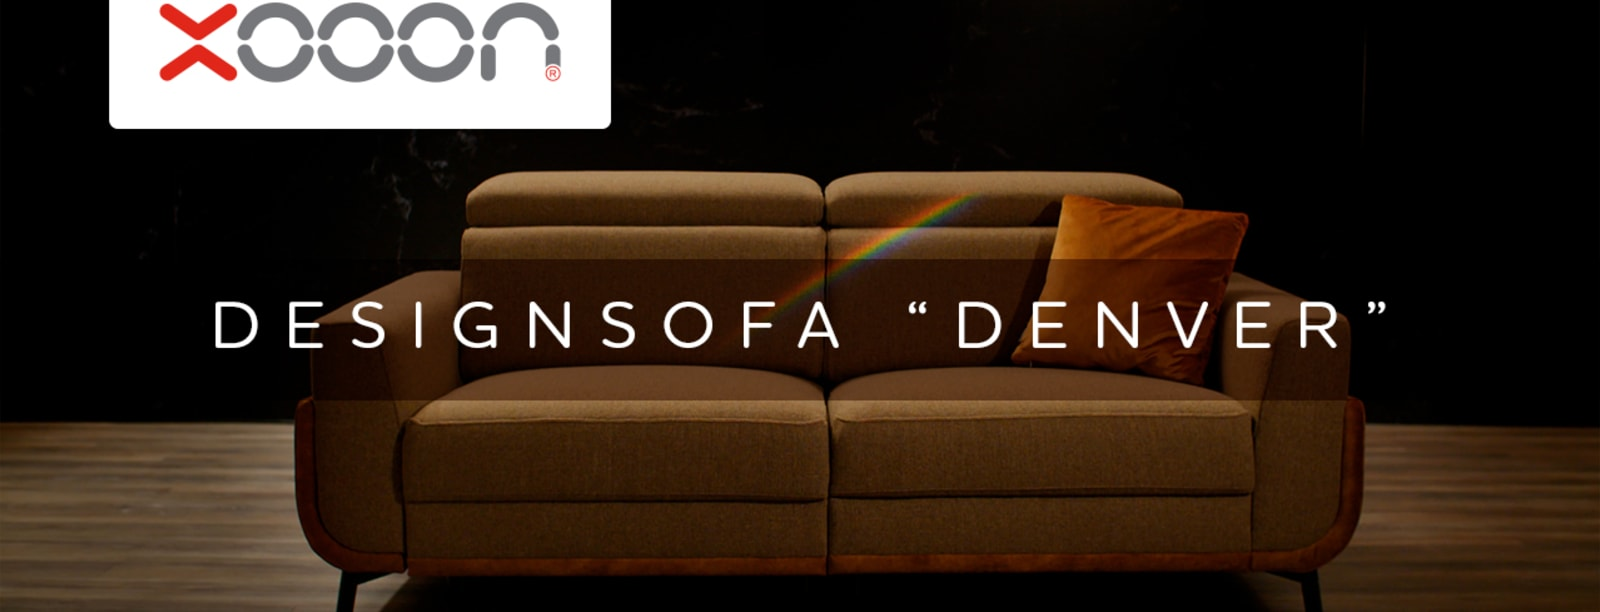 Loungen met designsalon DENVER